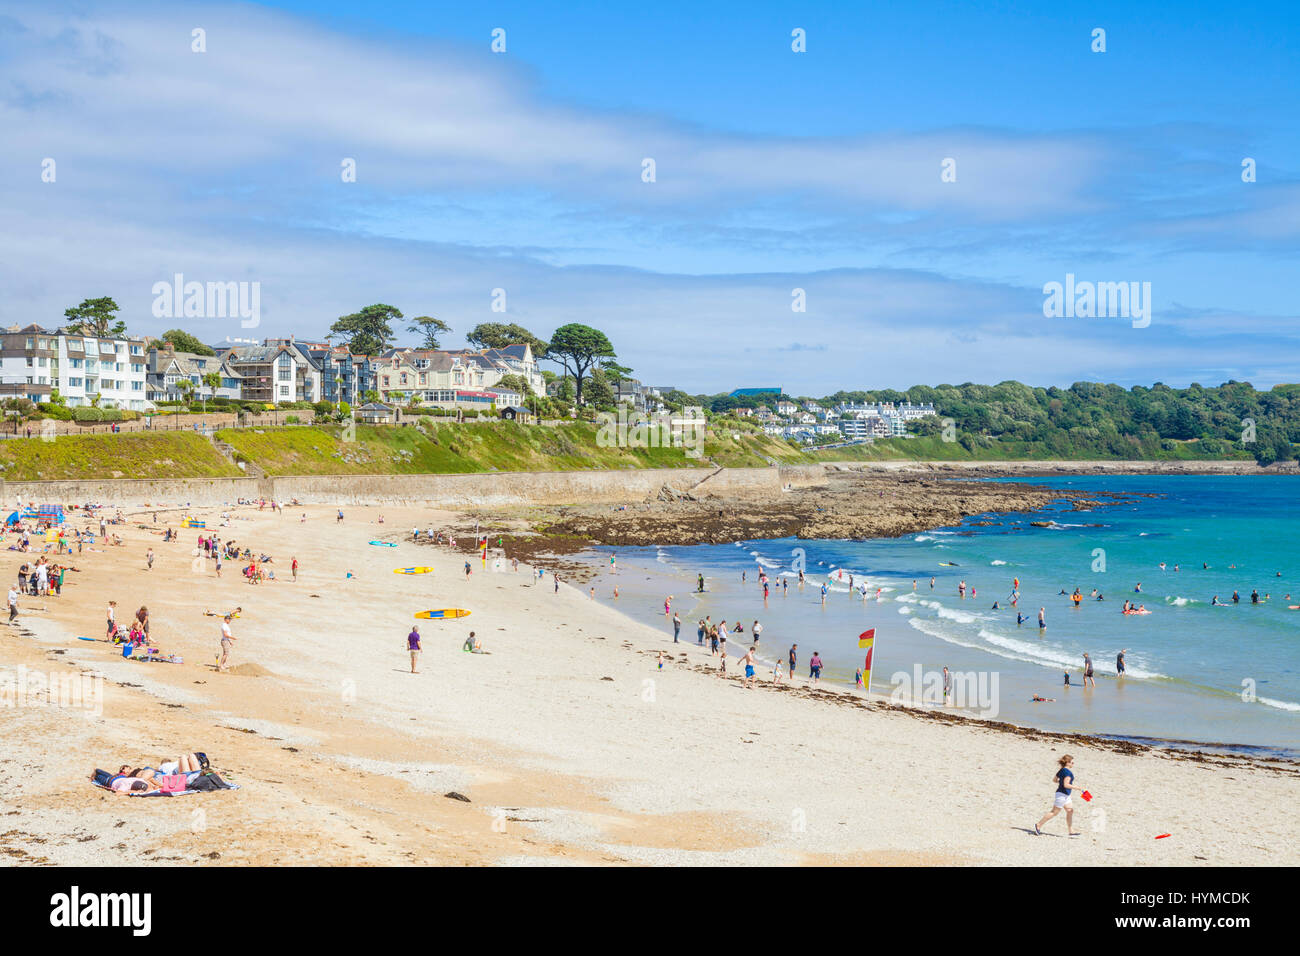 Falmouth cornwall busy Gyllyngvase Beach packed with holidaymakers on a busy beach Falmouth Cornwall west country - Stock Image